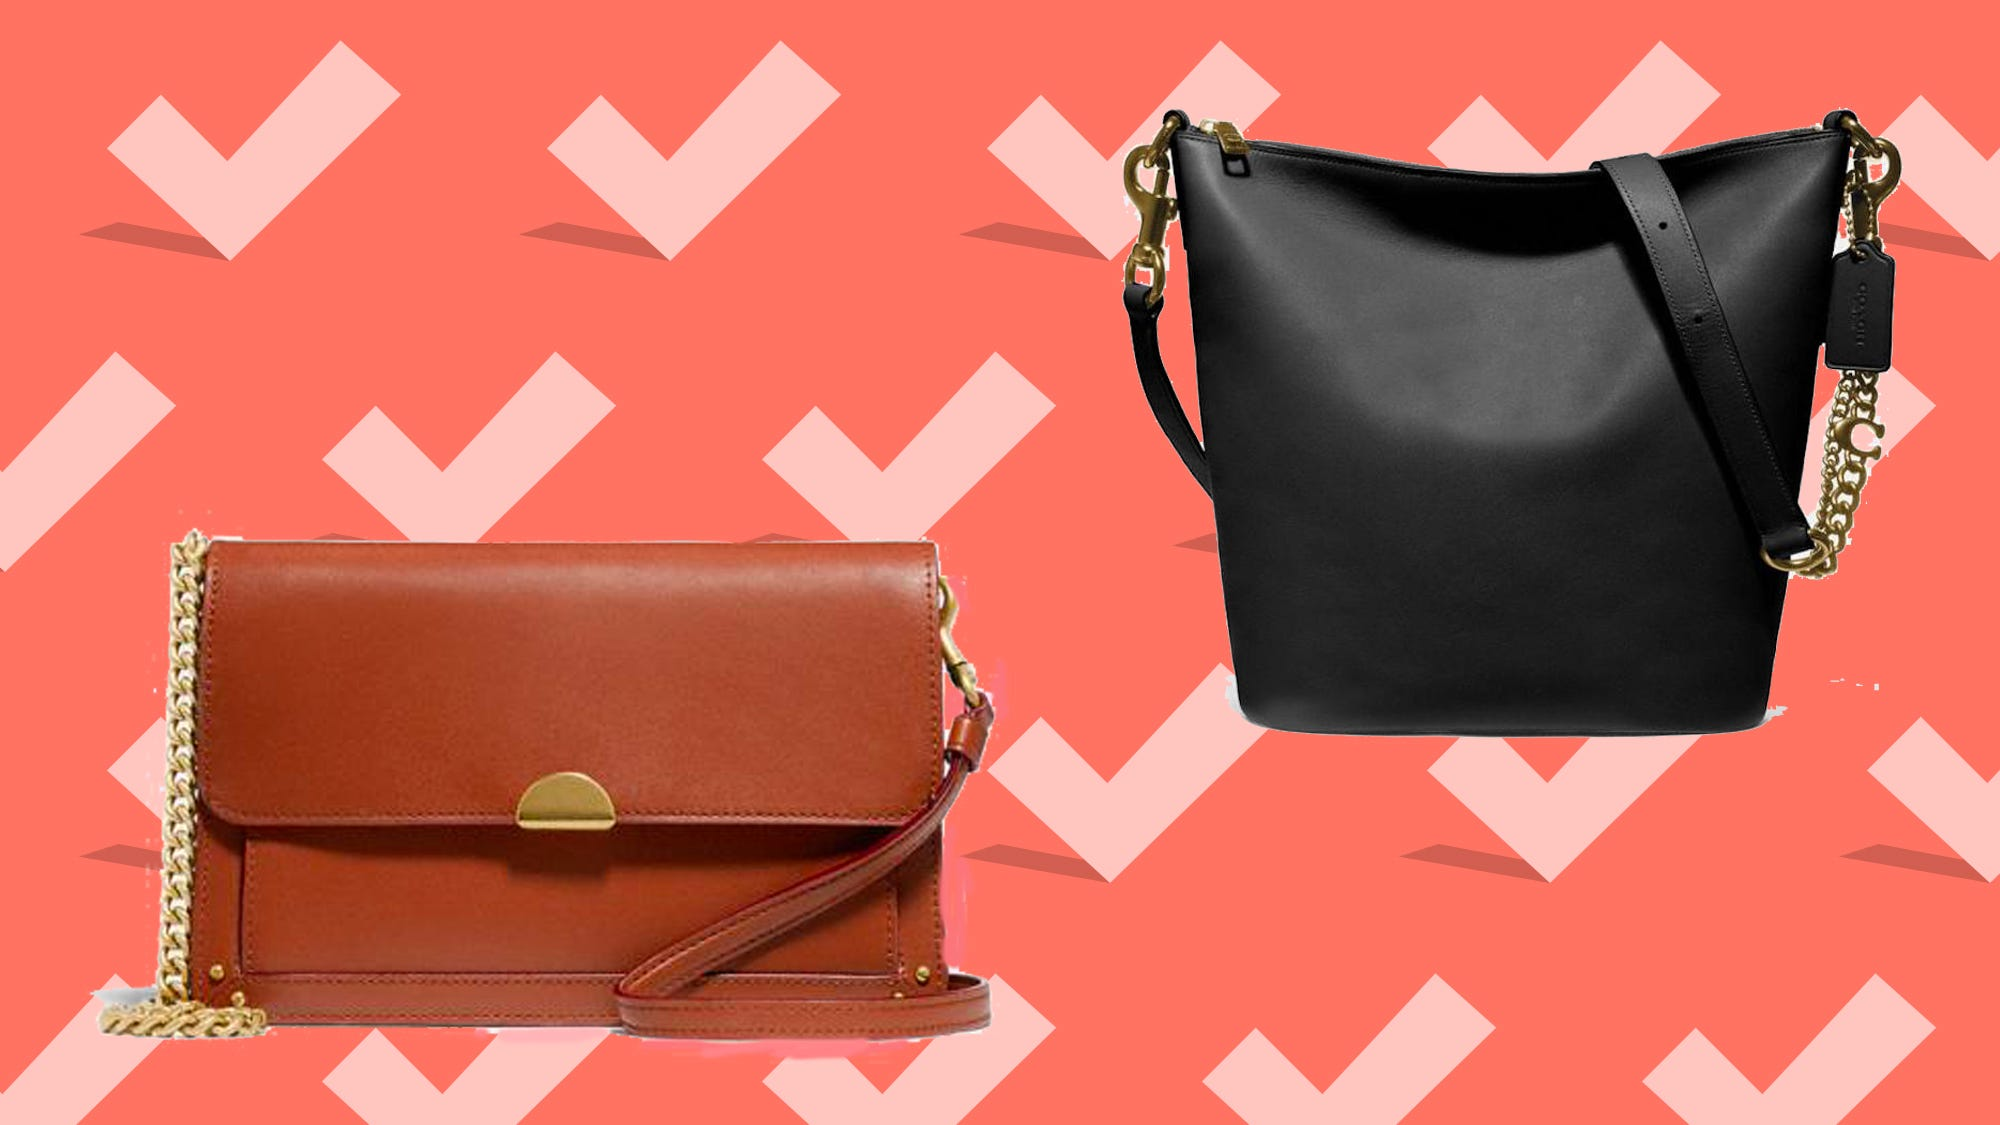 Black Friday 2020: Shop Coach Outlet bags at up to 70% off right now + 20% off